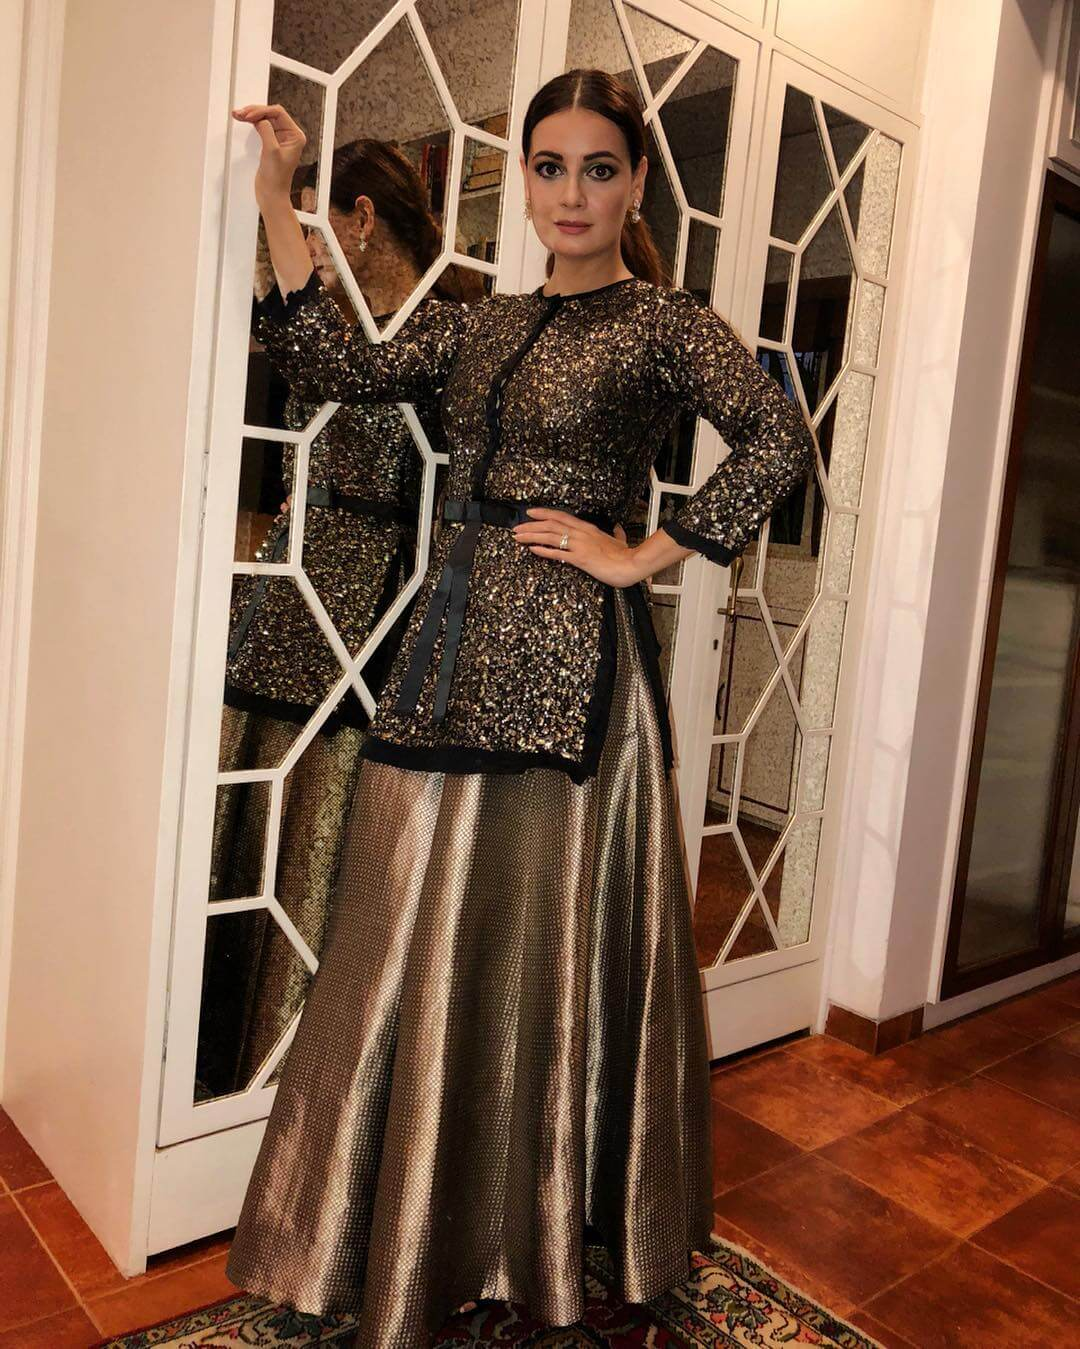 The metallics and sparkle Dia Mirza outfits